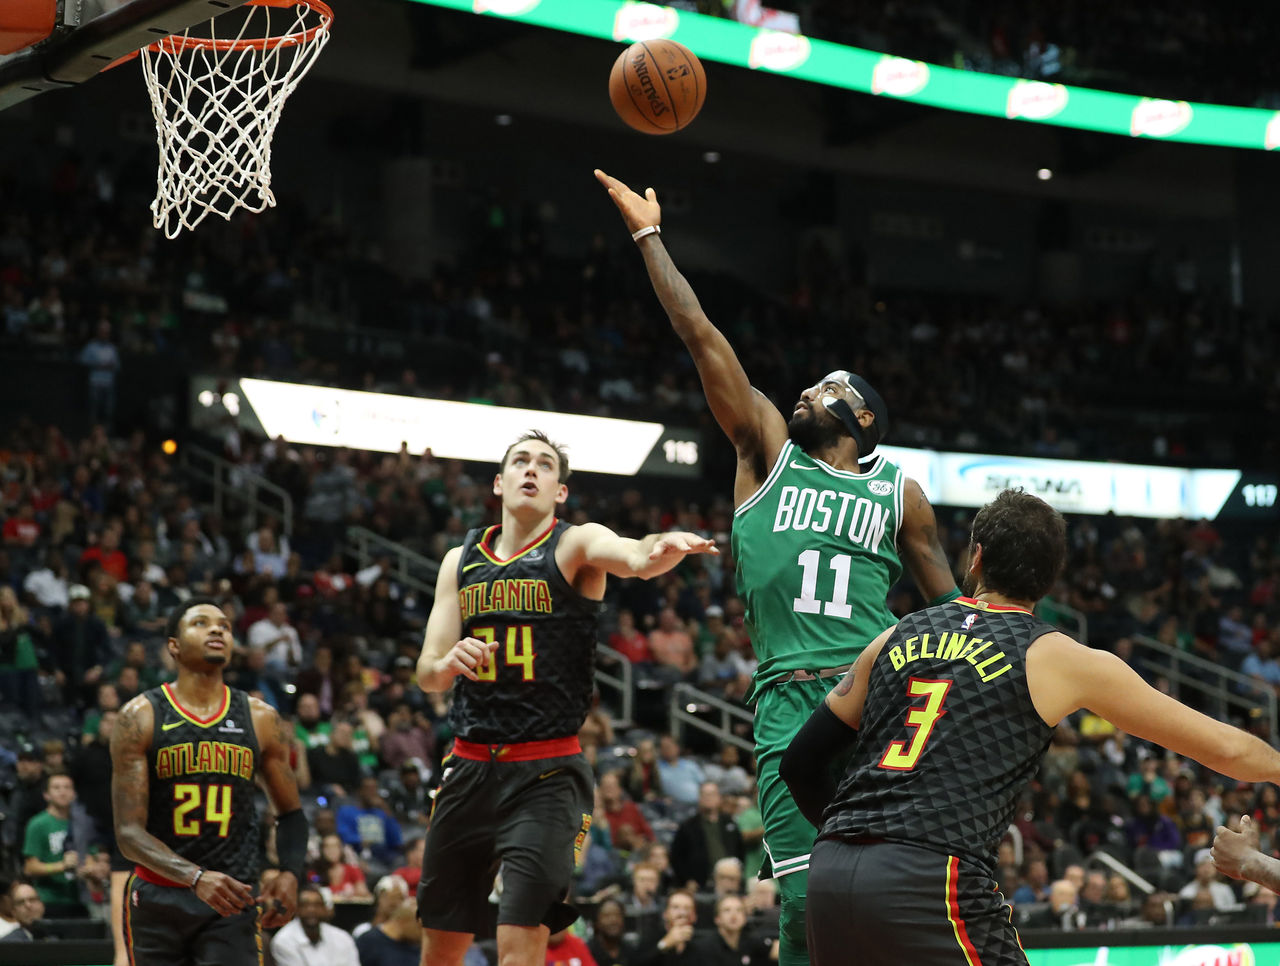 Cropped 2017 11 19t032927z 107148931 nocid rtrmadp 3 nba boston celtics at atlanta hawks